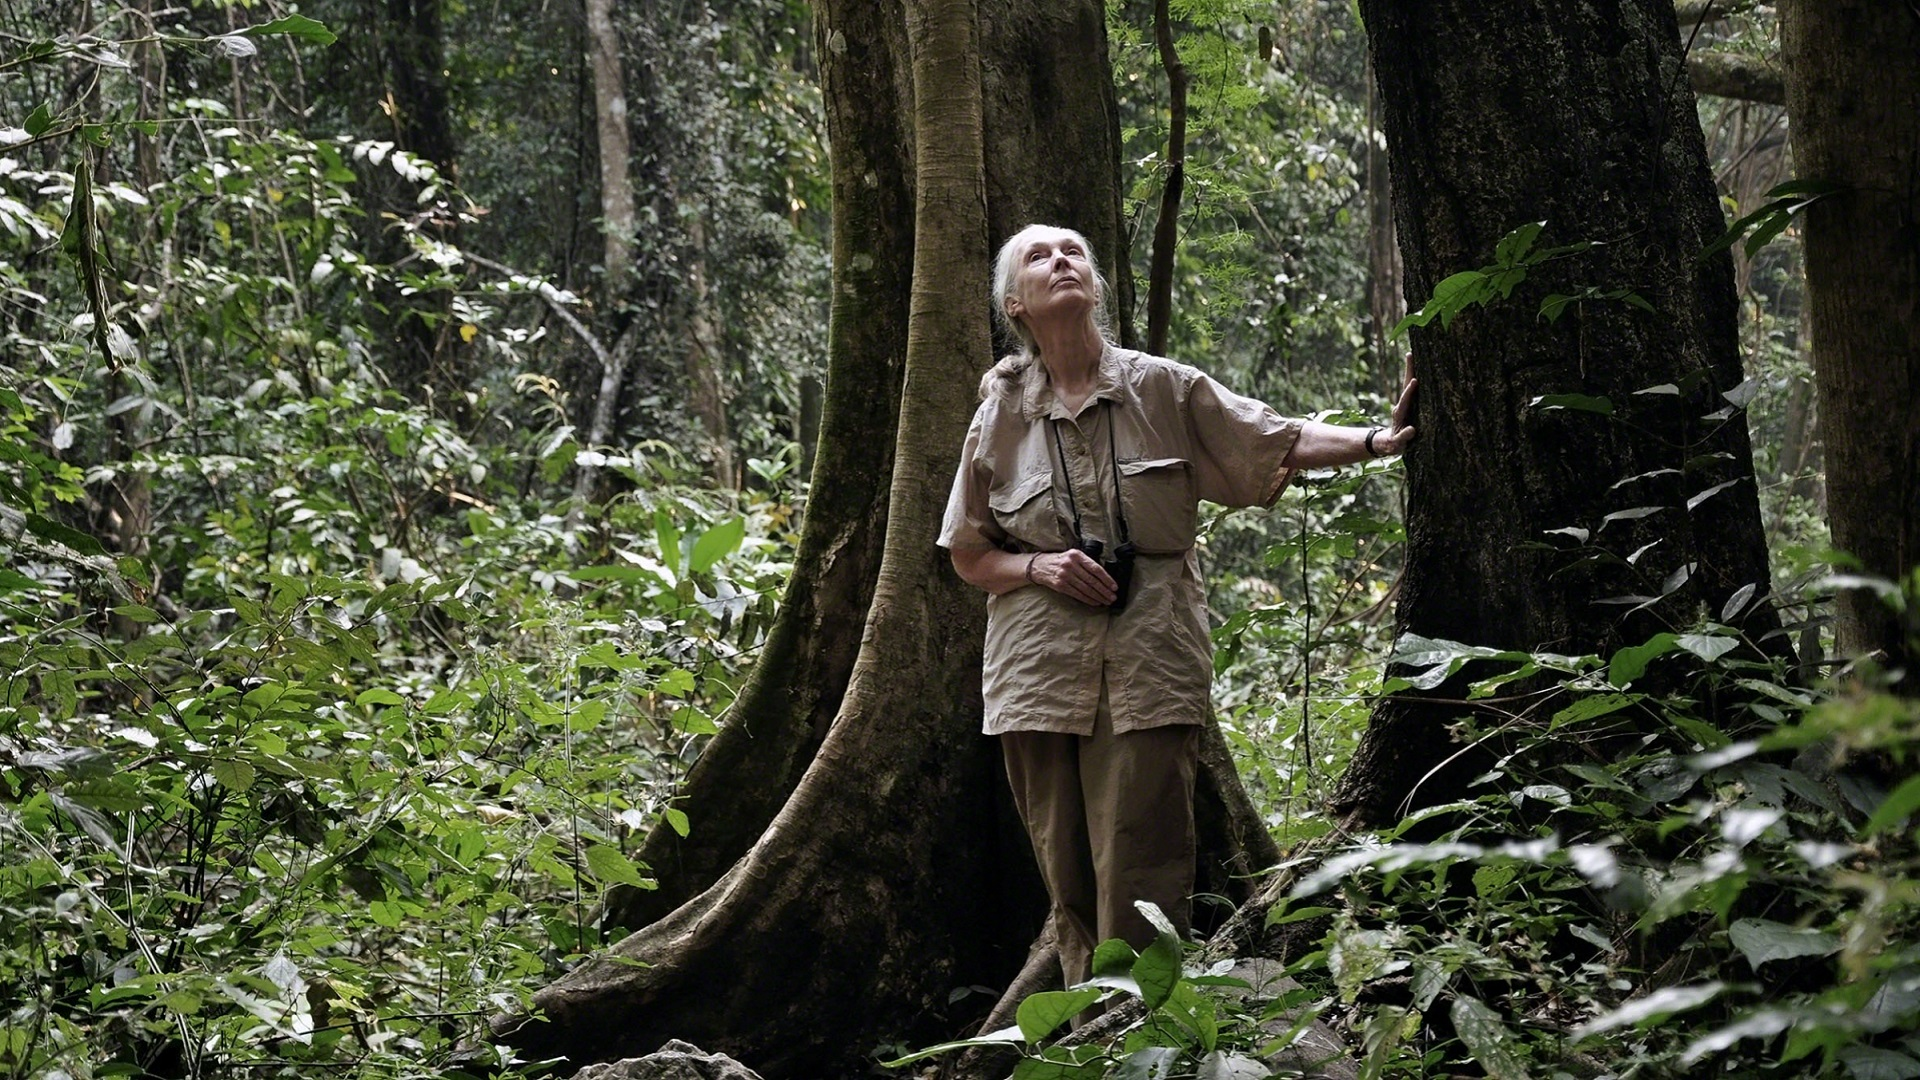 jane goodall_chimpanzee_jane goodall in the forest